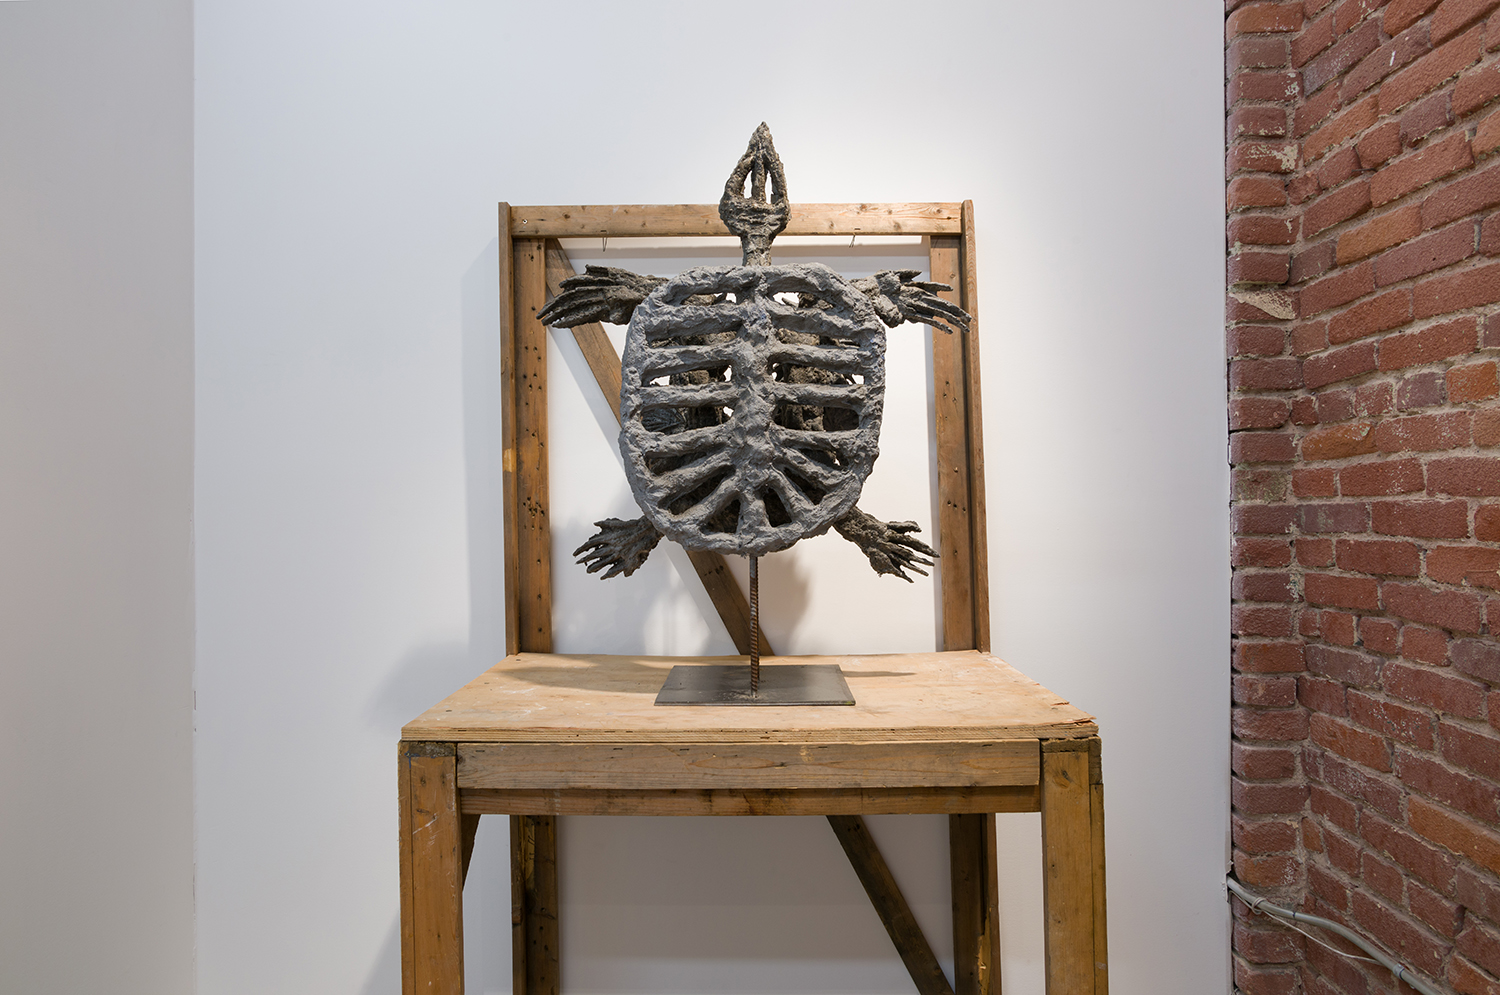 Evans Wittenberg,  Turtle,  2016,             cement, steel, 38 x 29 x 12 inches,                 table: wood, 24 x 38 x 72